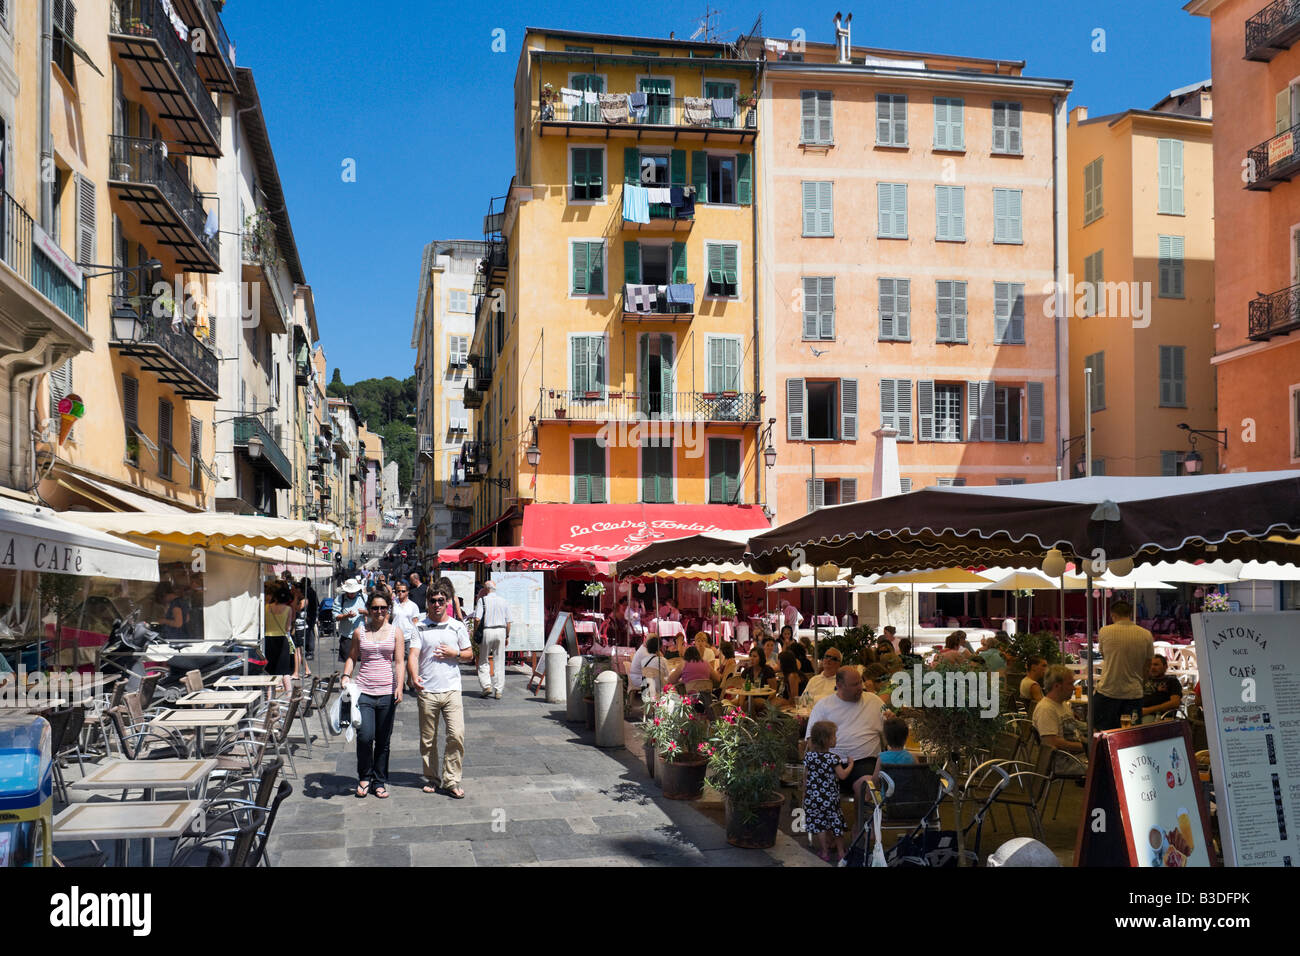 cafes and bars in place rossetti in the old town vieux nice nice stock photo royalty free. Black Bedroom Furniture Sets. Home Design Ideas